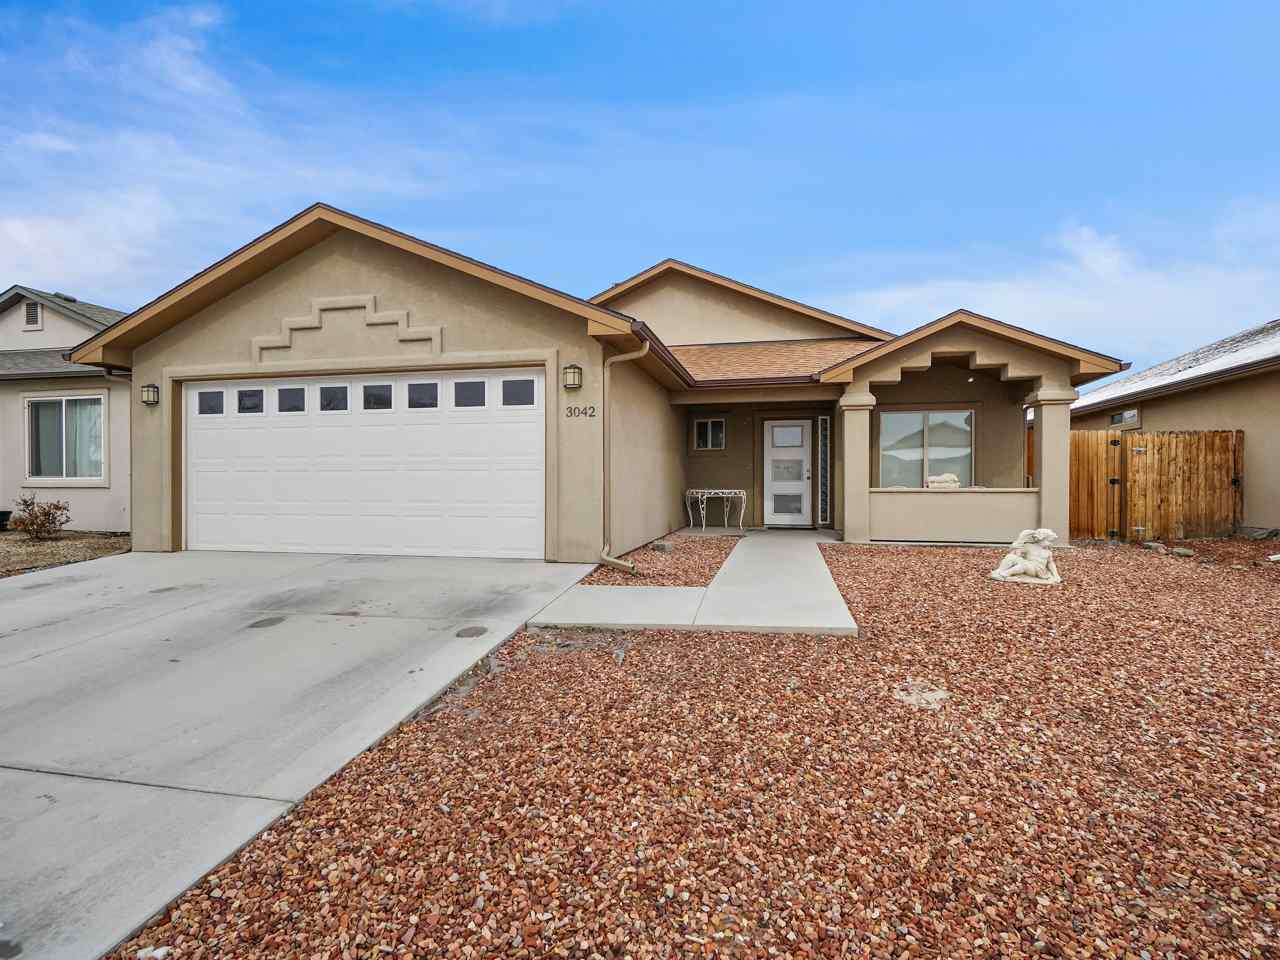 3042 Prickly Pear Drive Property Photo